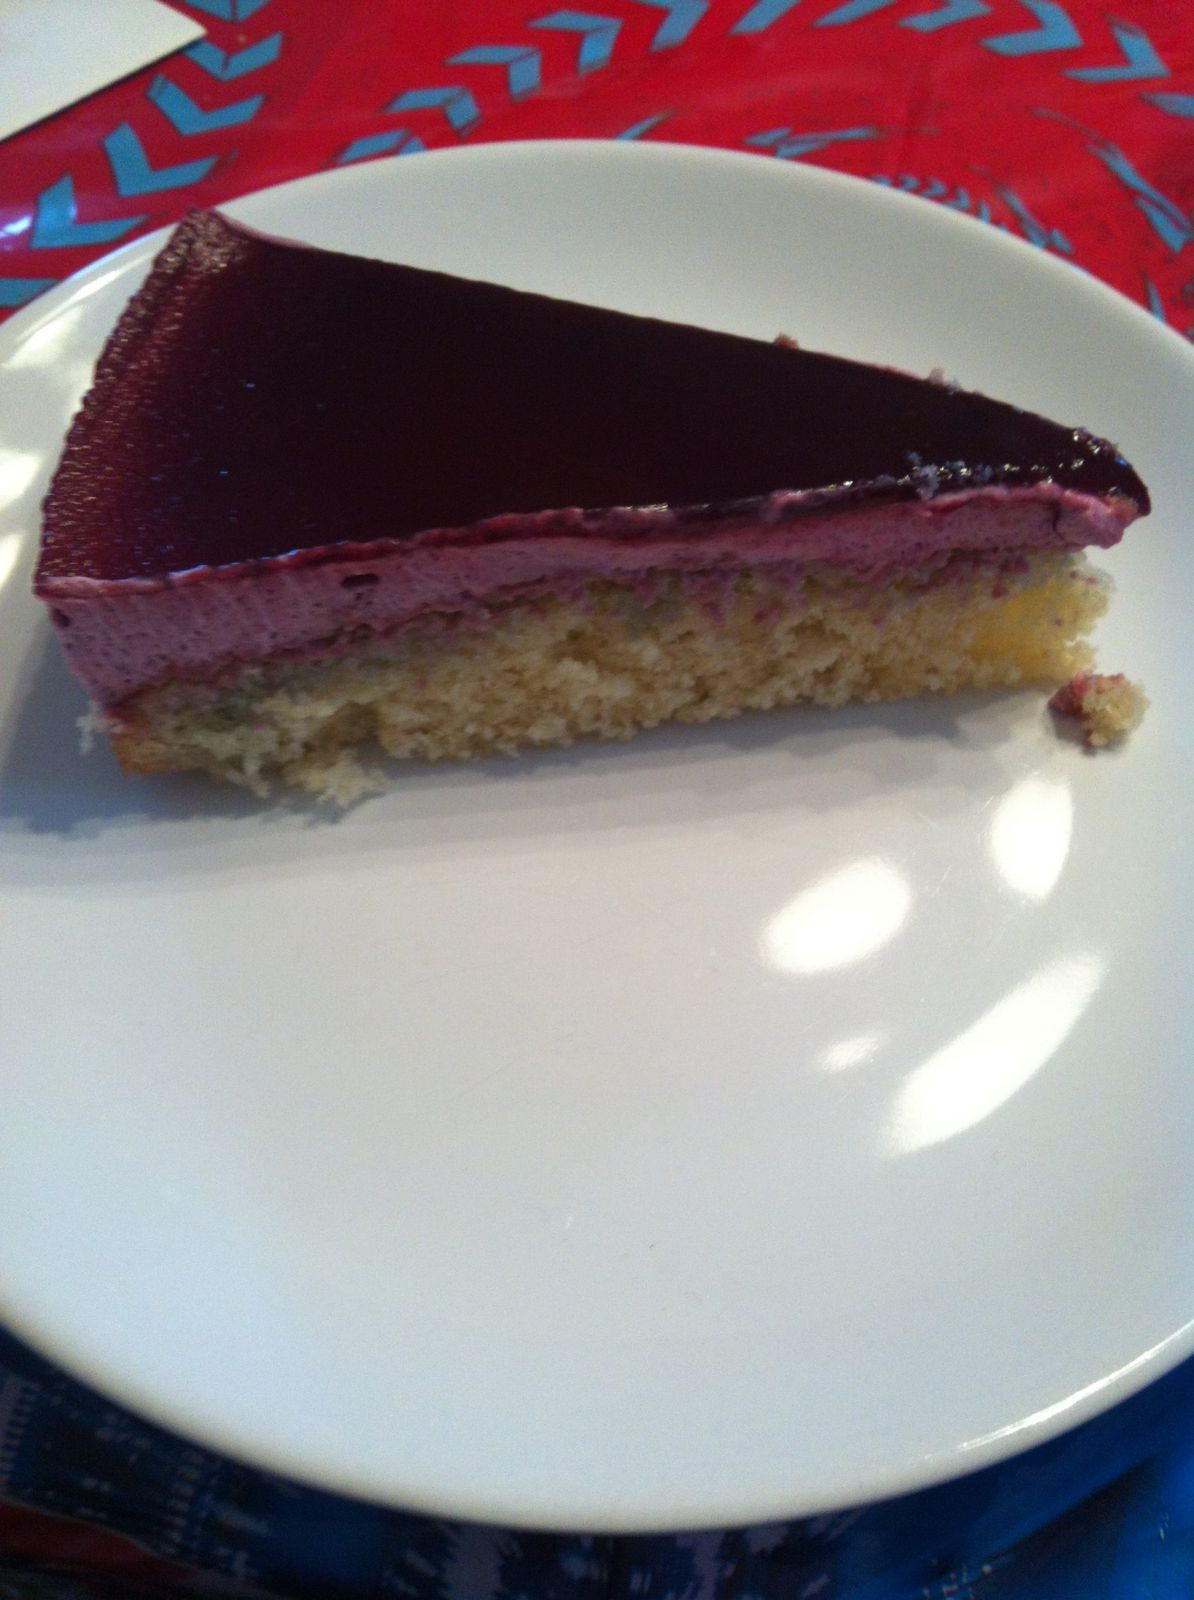 Royal cassis ou bavarois cassis(thermomix)